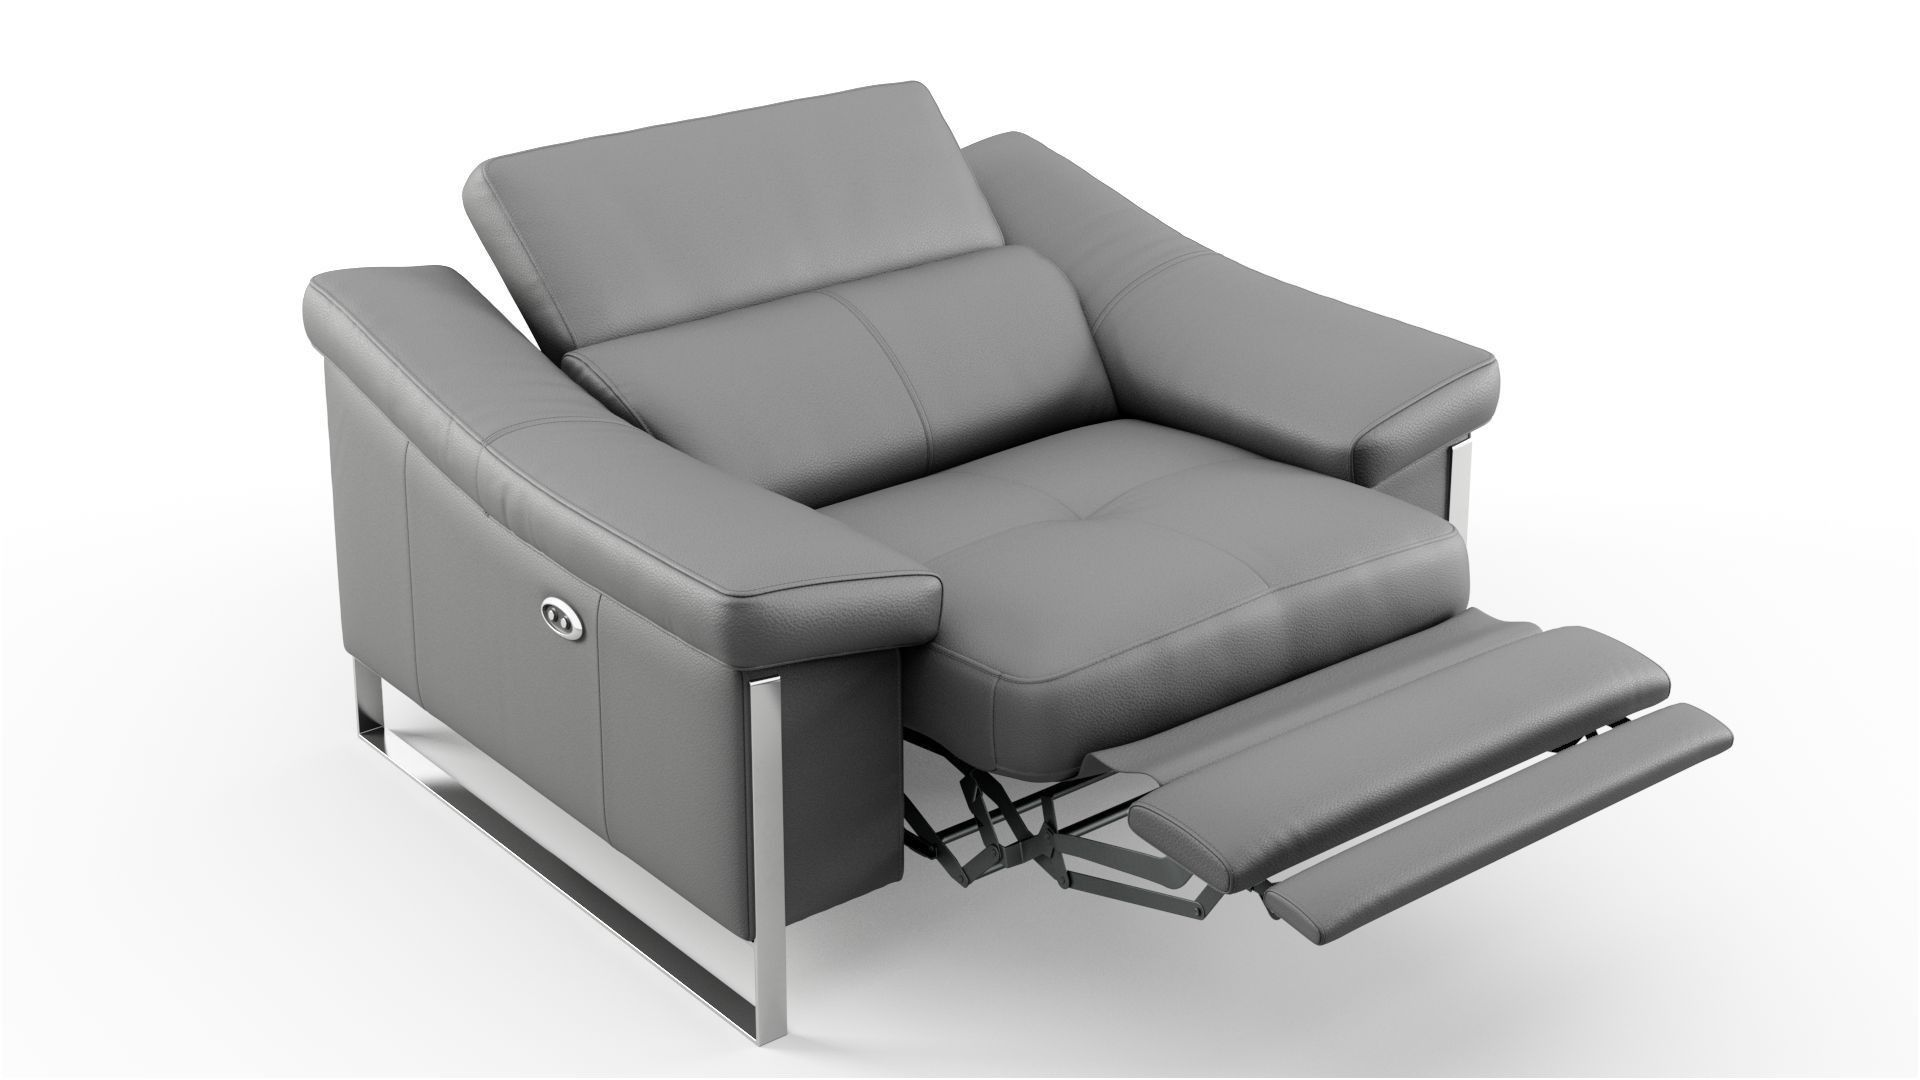 Sofa Mit Relaxfunktion Typisch 2er Sofa Mit Relaxfunktion Couch Möbel Pinterest Couch